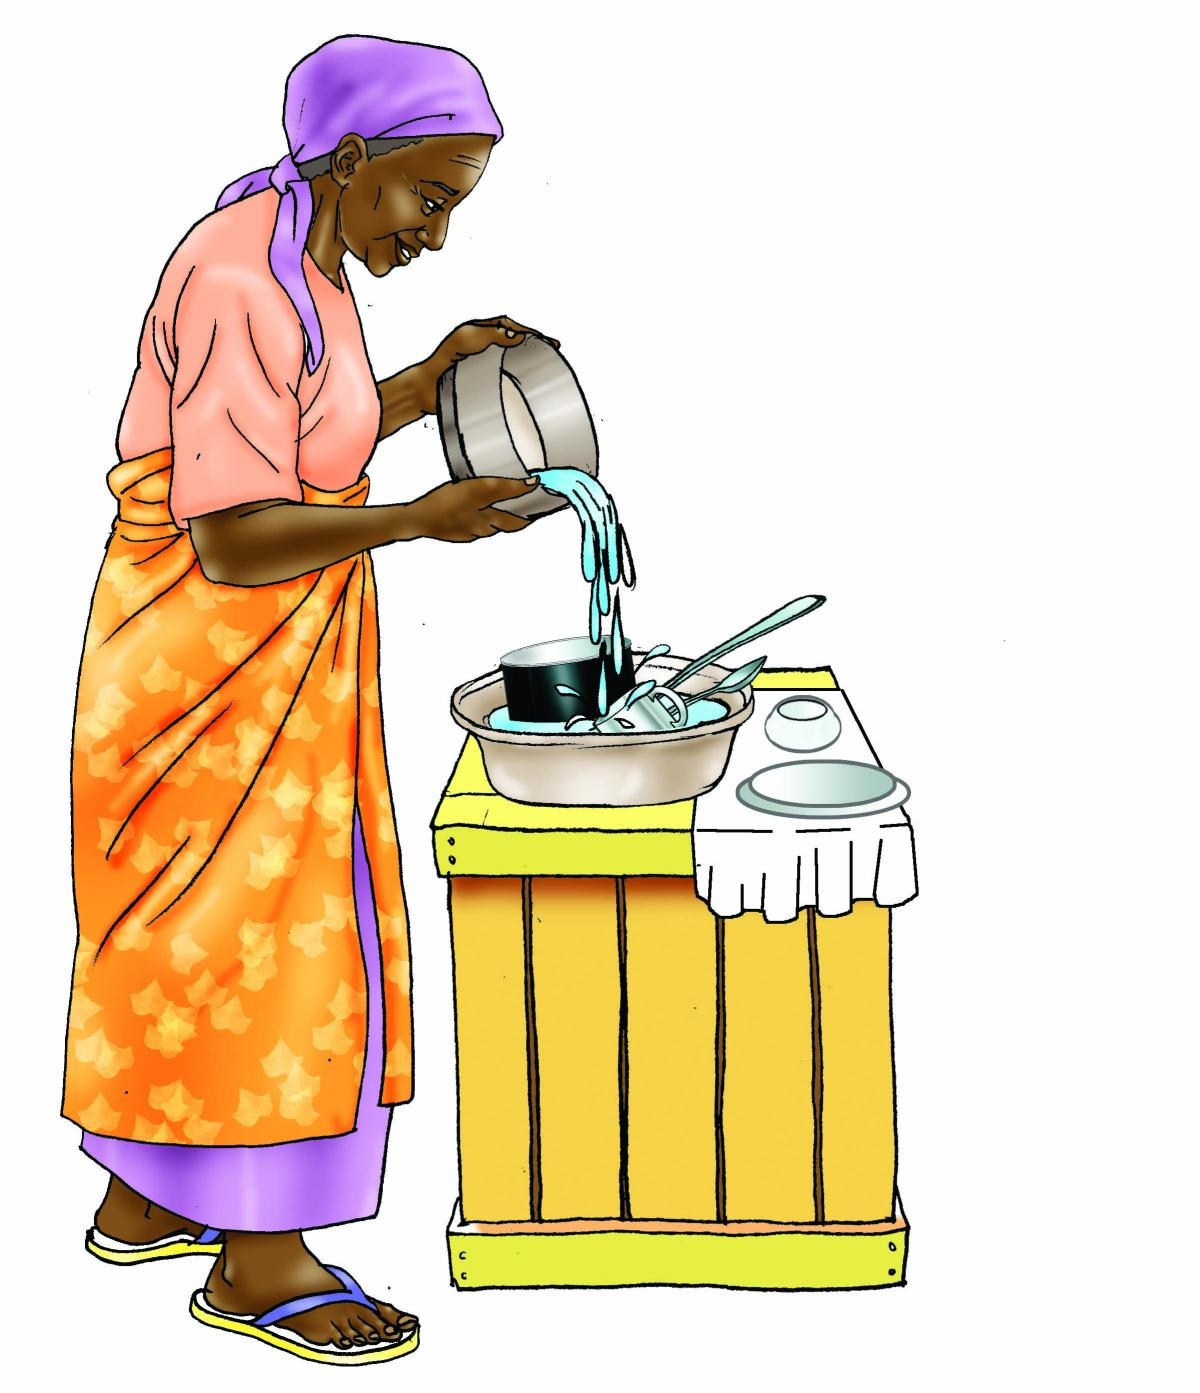 Sanitation - Grandmother washing dishes - 01 - Generic